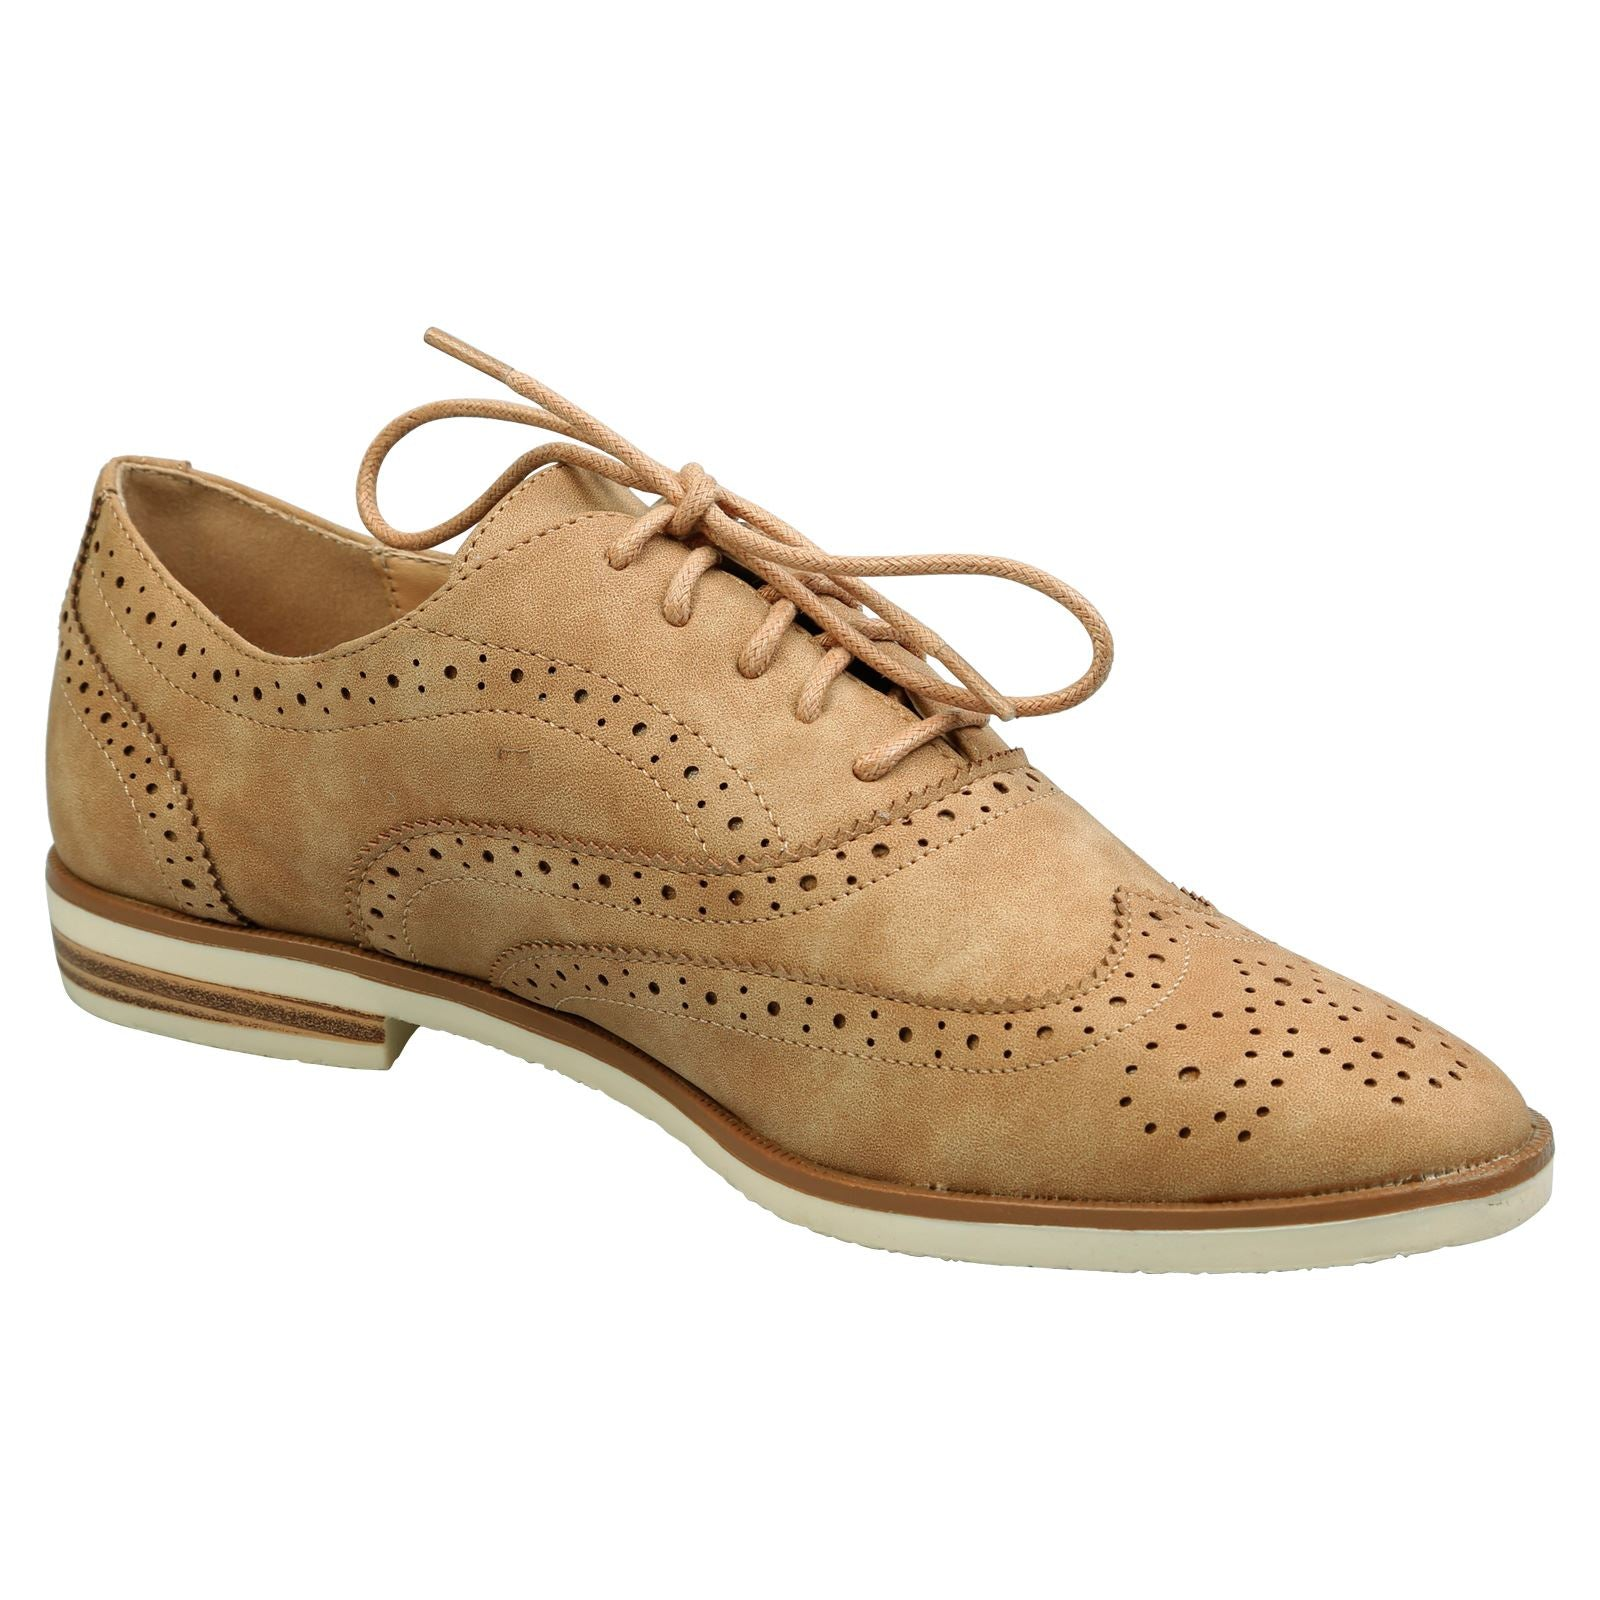 Prue White Sole Brogues in Tan Faux Suede